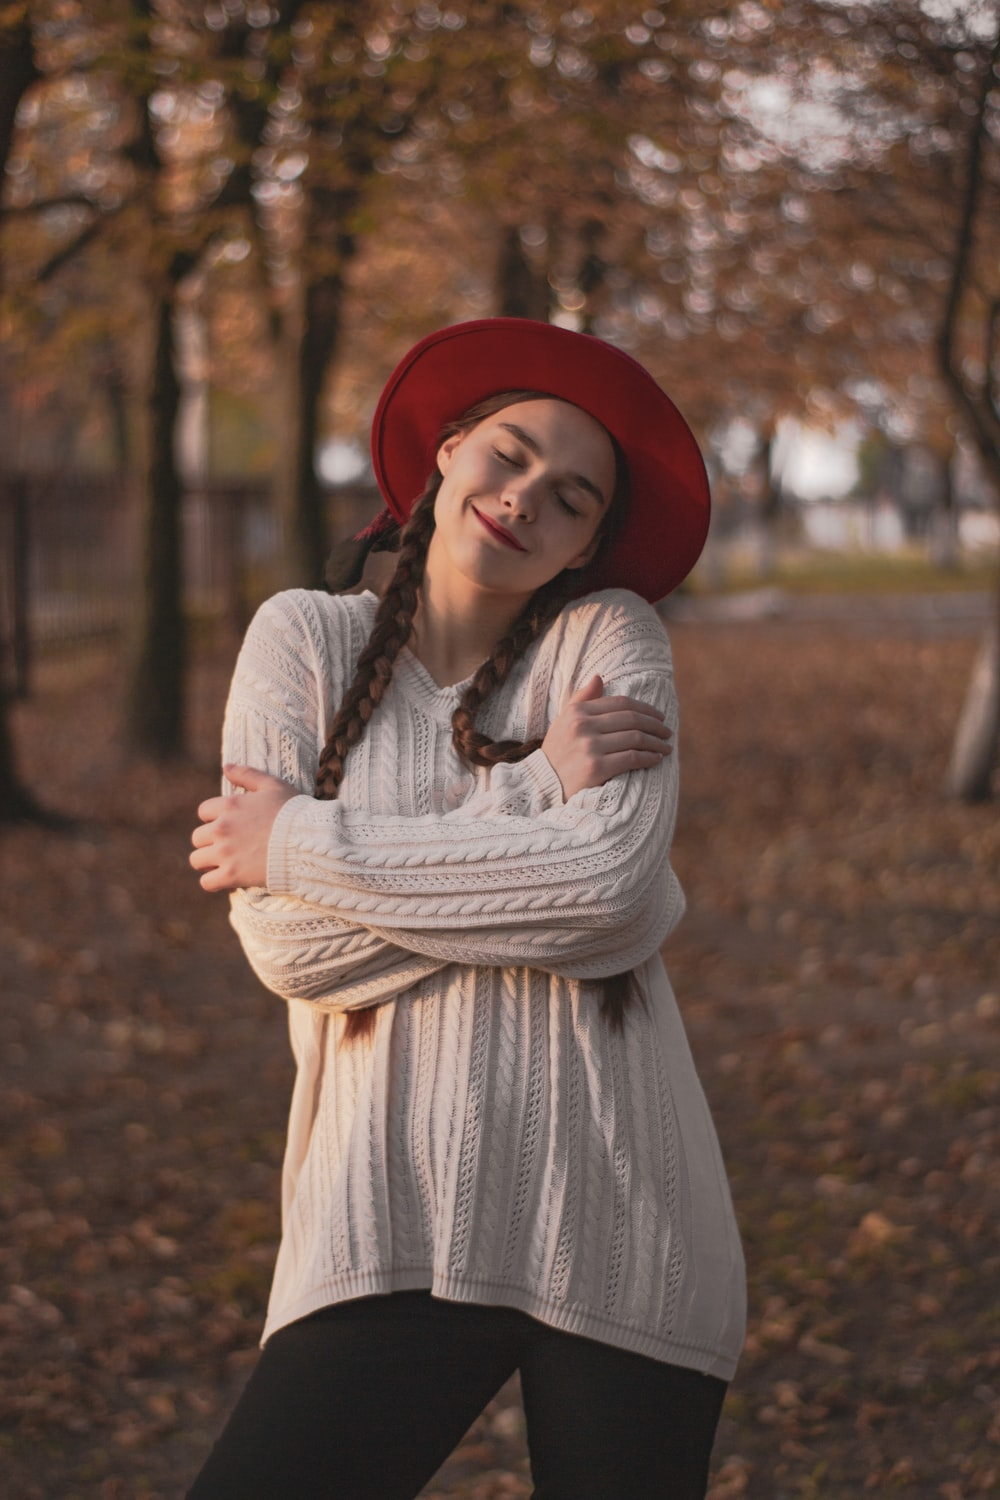 woman in red hat and gray long sleeve dress